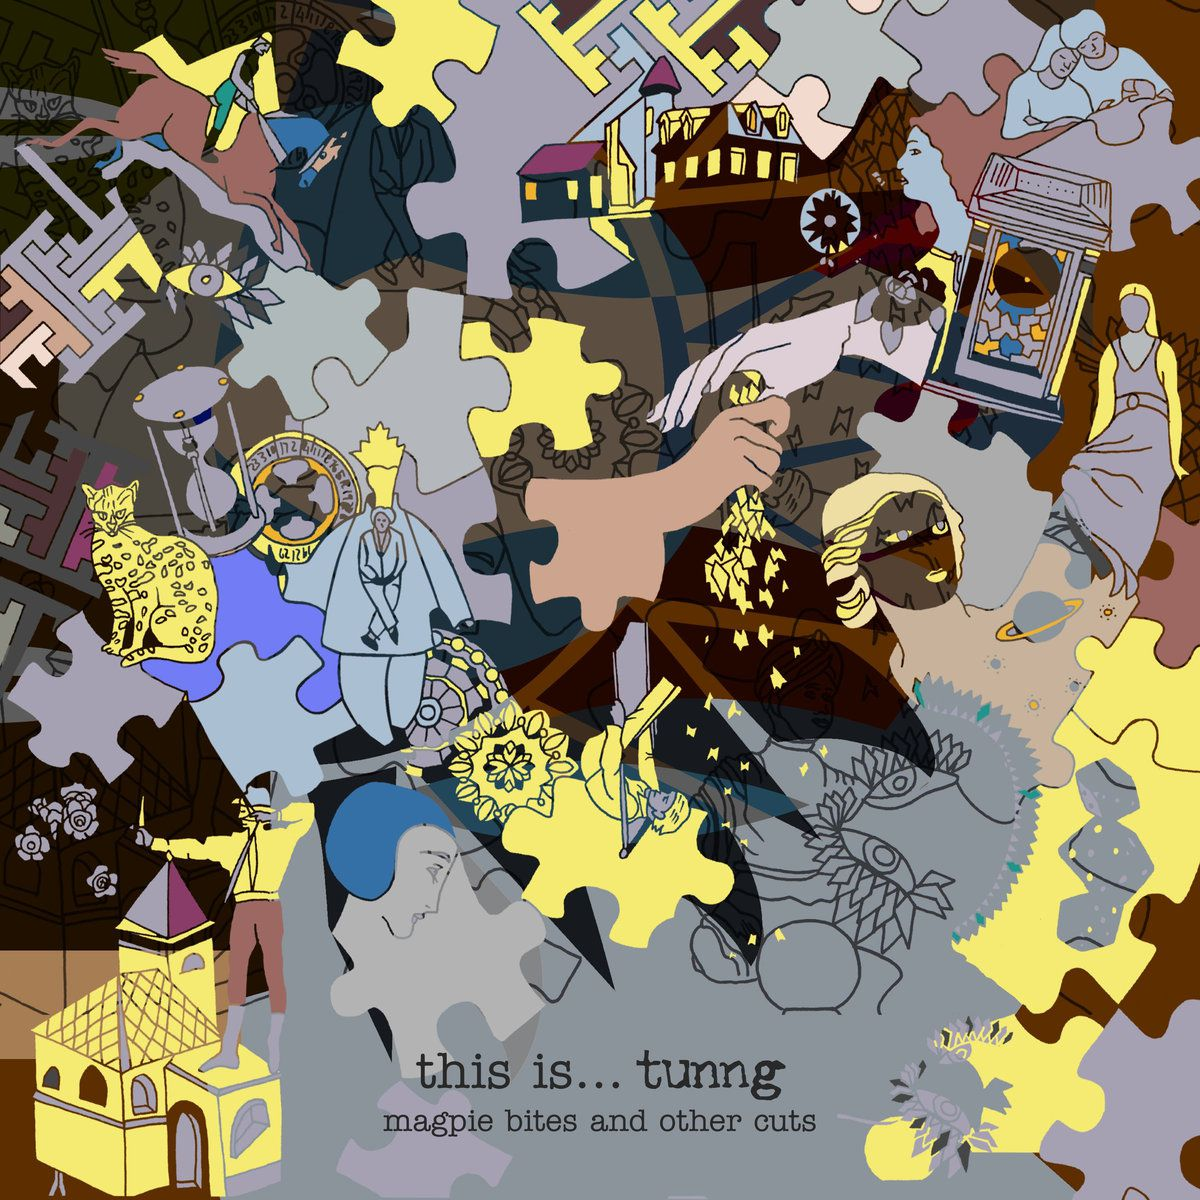 Tunng - 'This Is Tungg... Magpie Bites And Other Cuts'